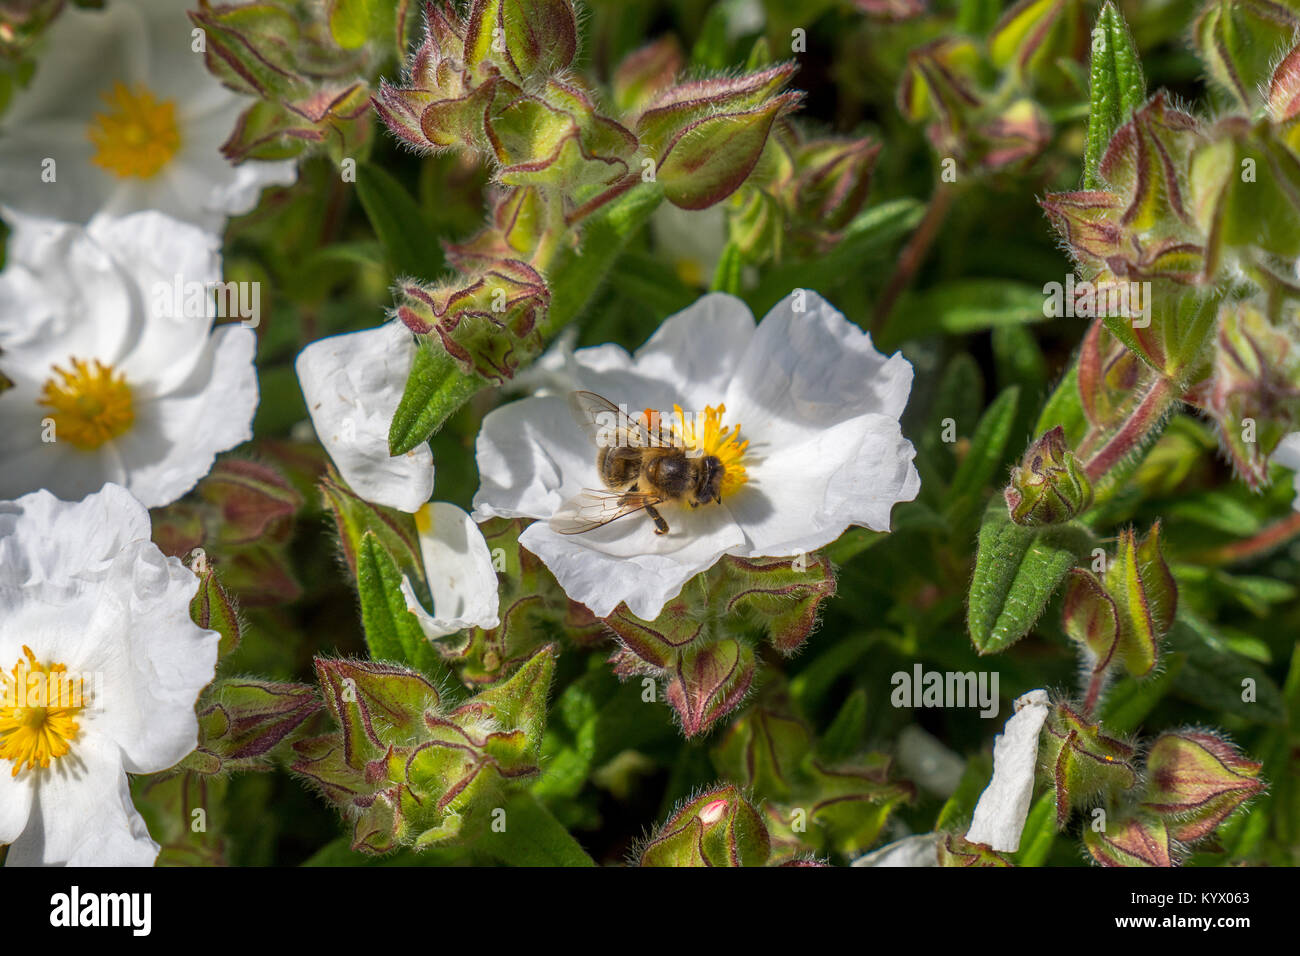 Bumble Bee Collecting Pollen On Small White Flower With Bright